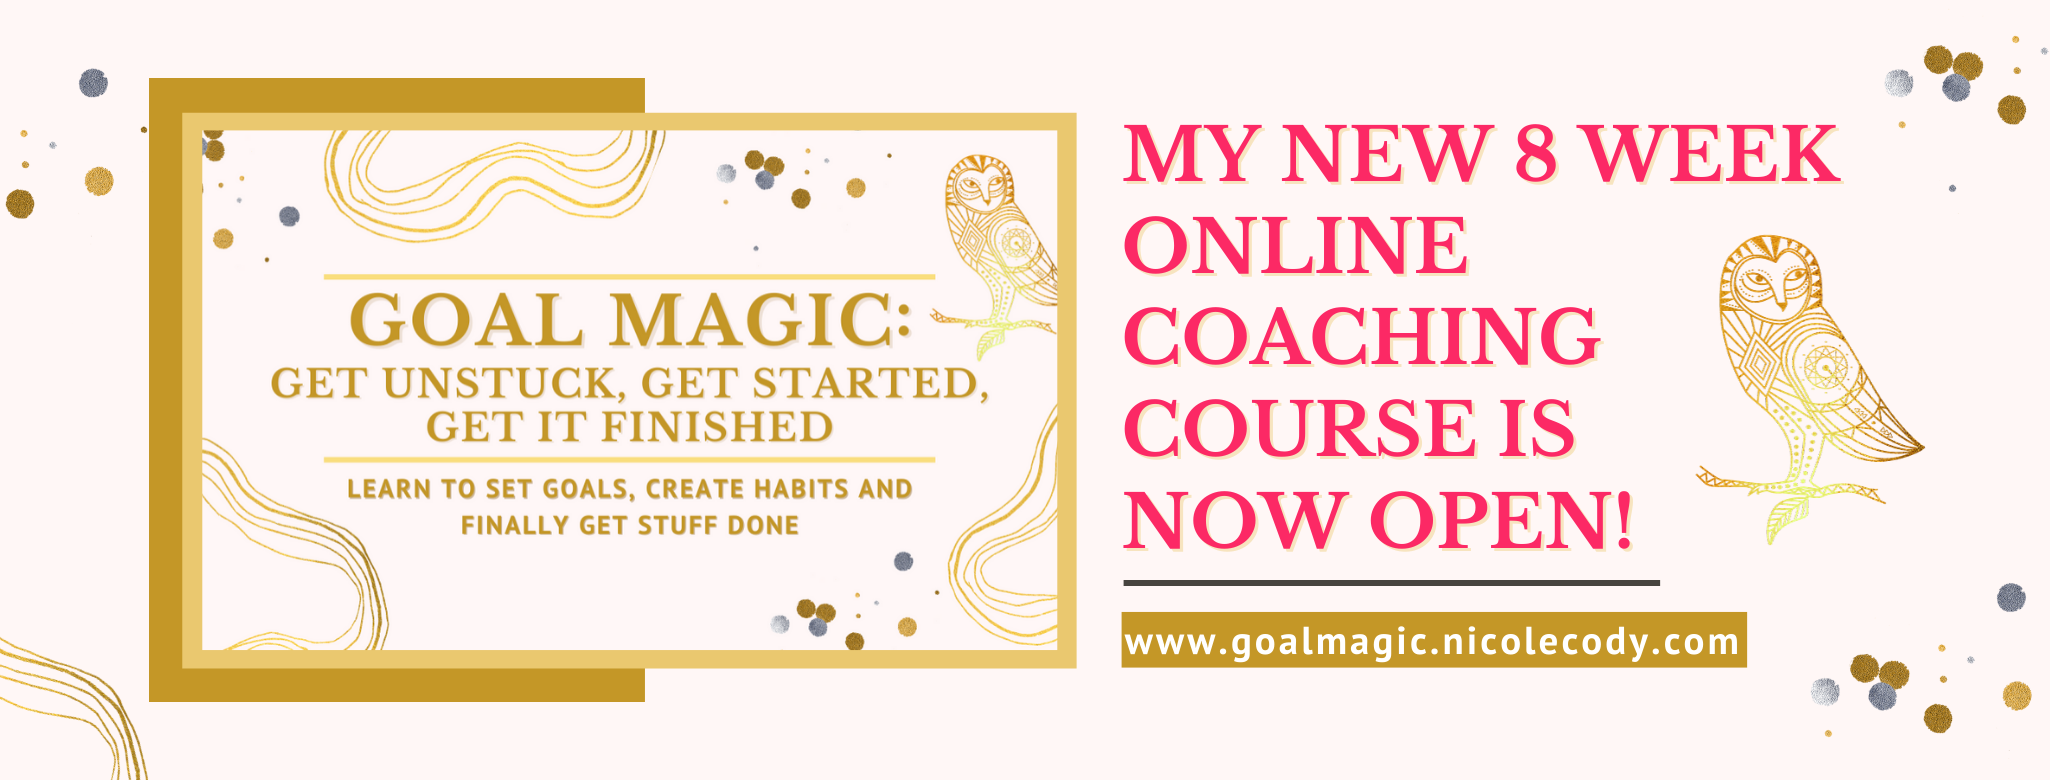 https://goalmagic.nicolecody.com/